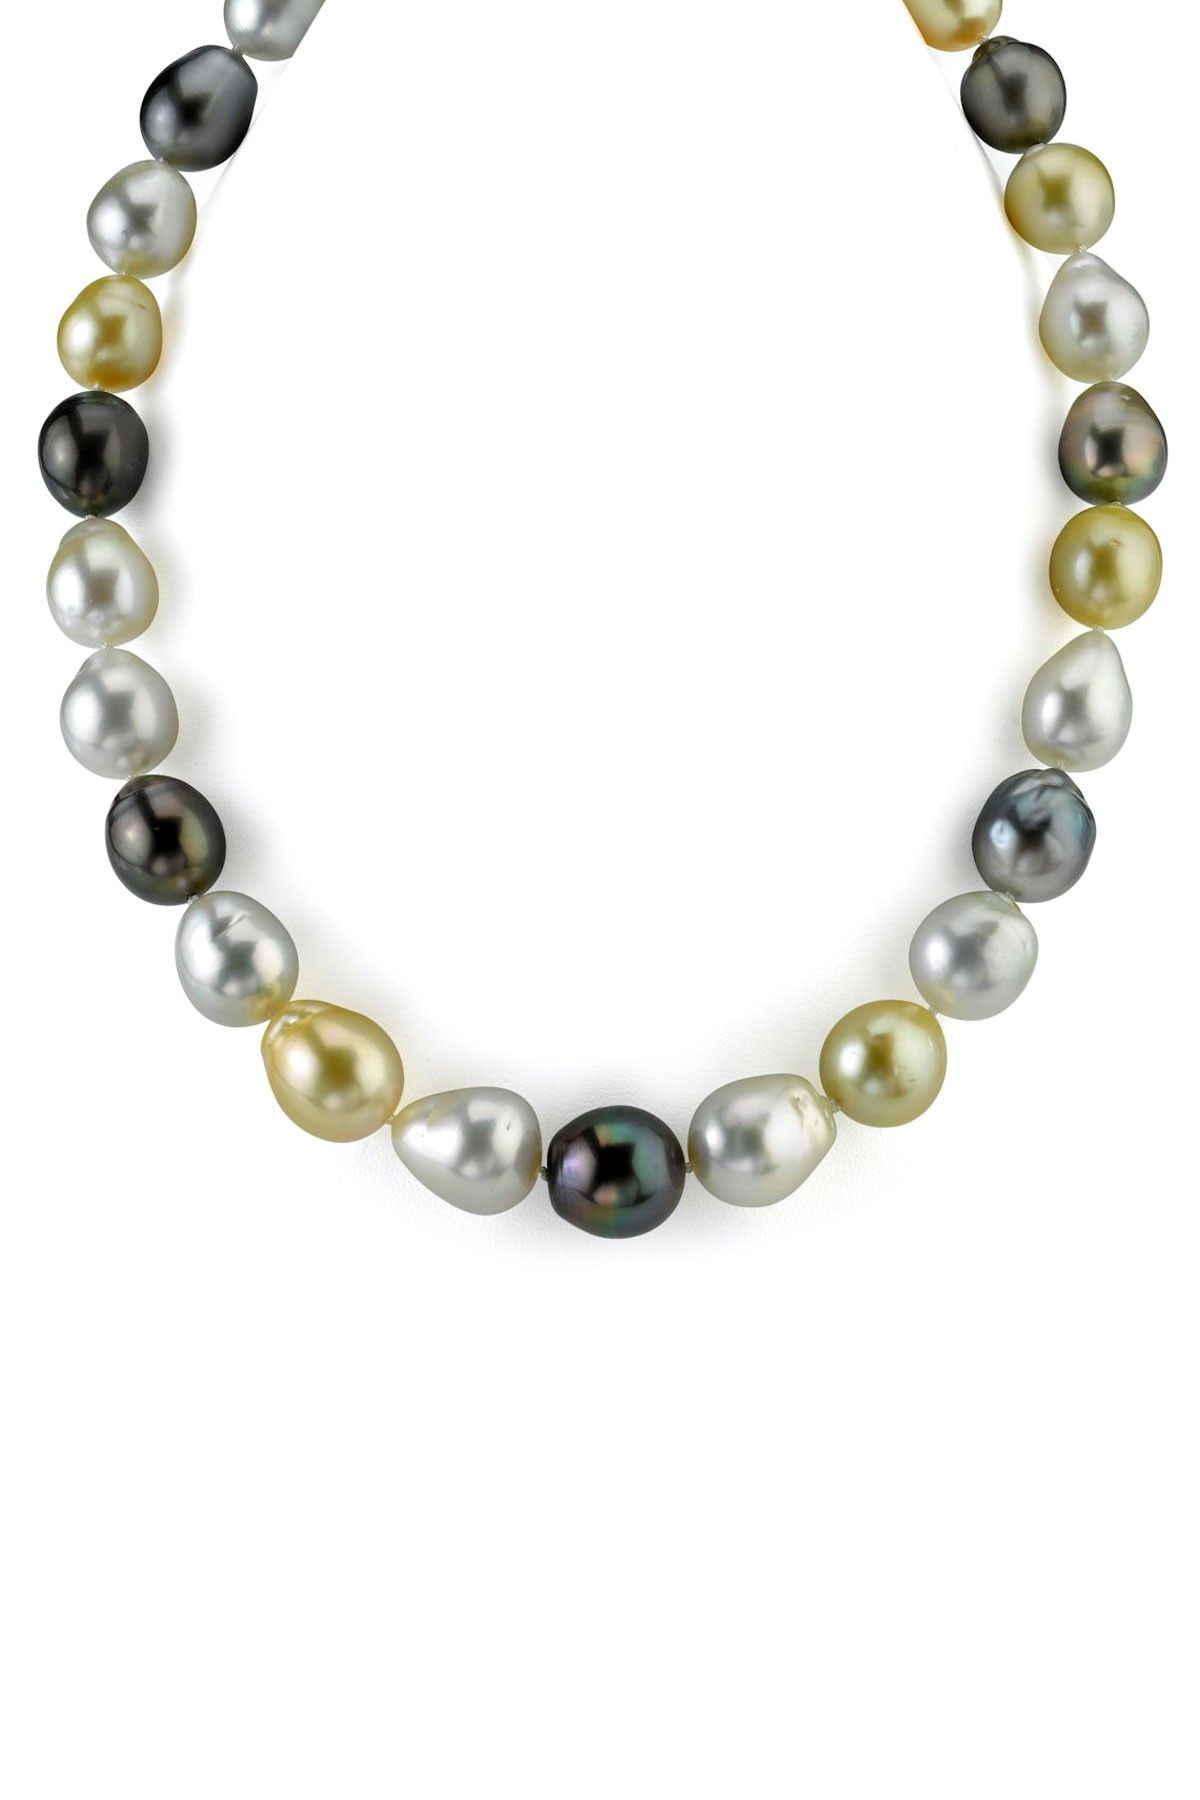 14k White Gold 1113mm Multicolor South Sea Baroque Pearl Necklace